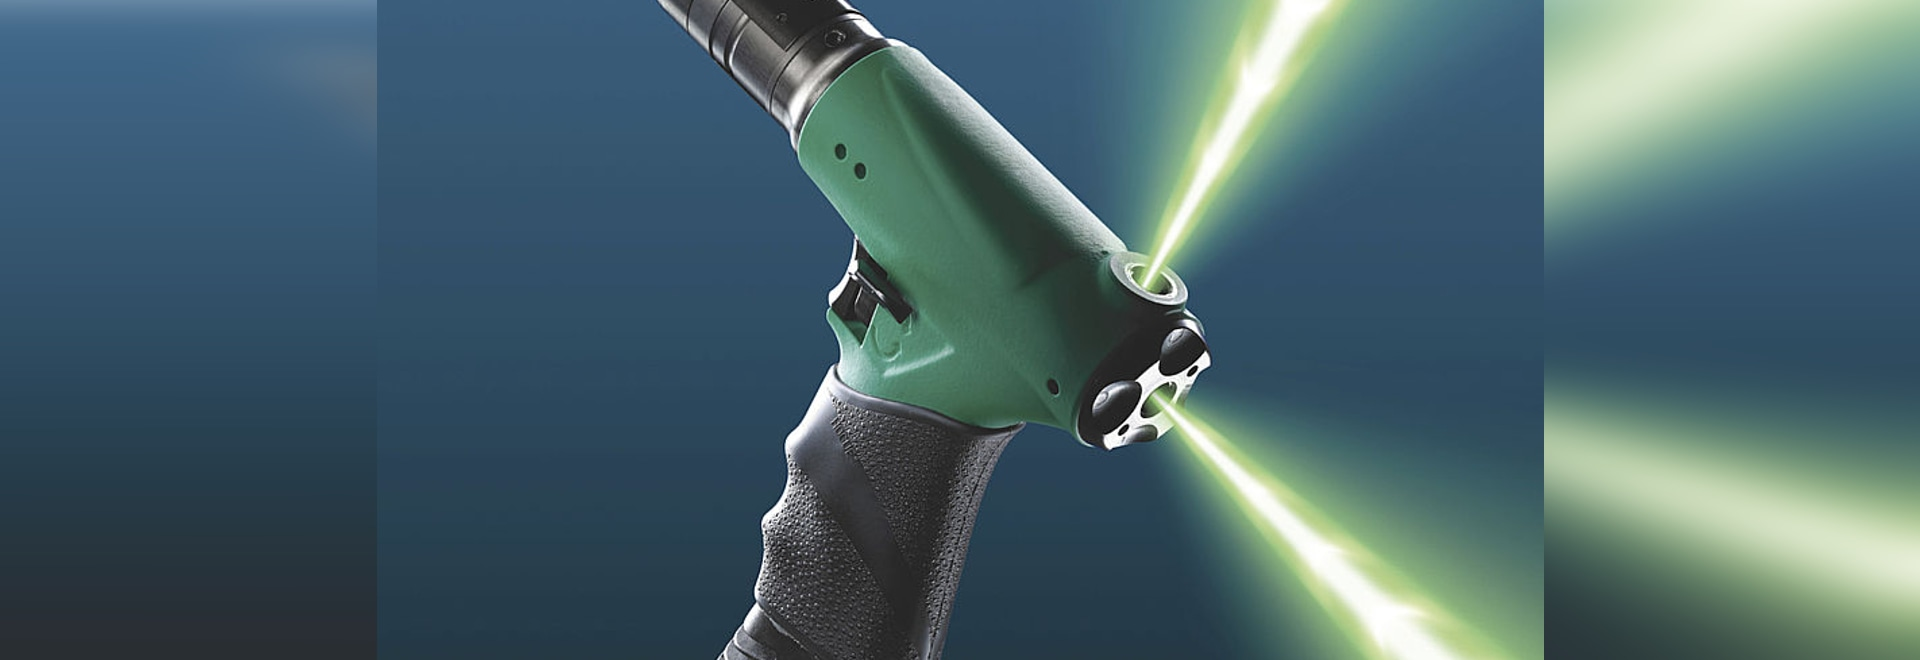 Air screwdrivers with triple air supply inlet: precise, powerful and ergonomic